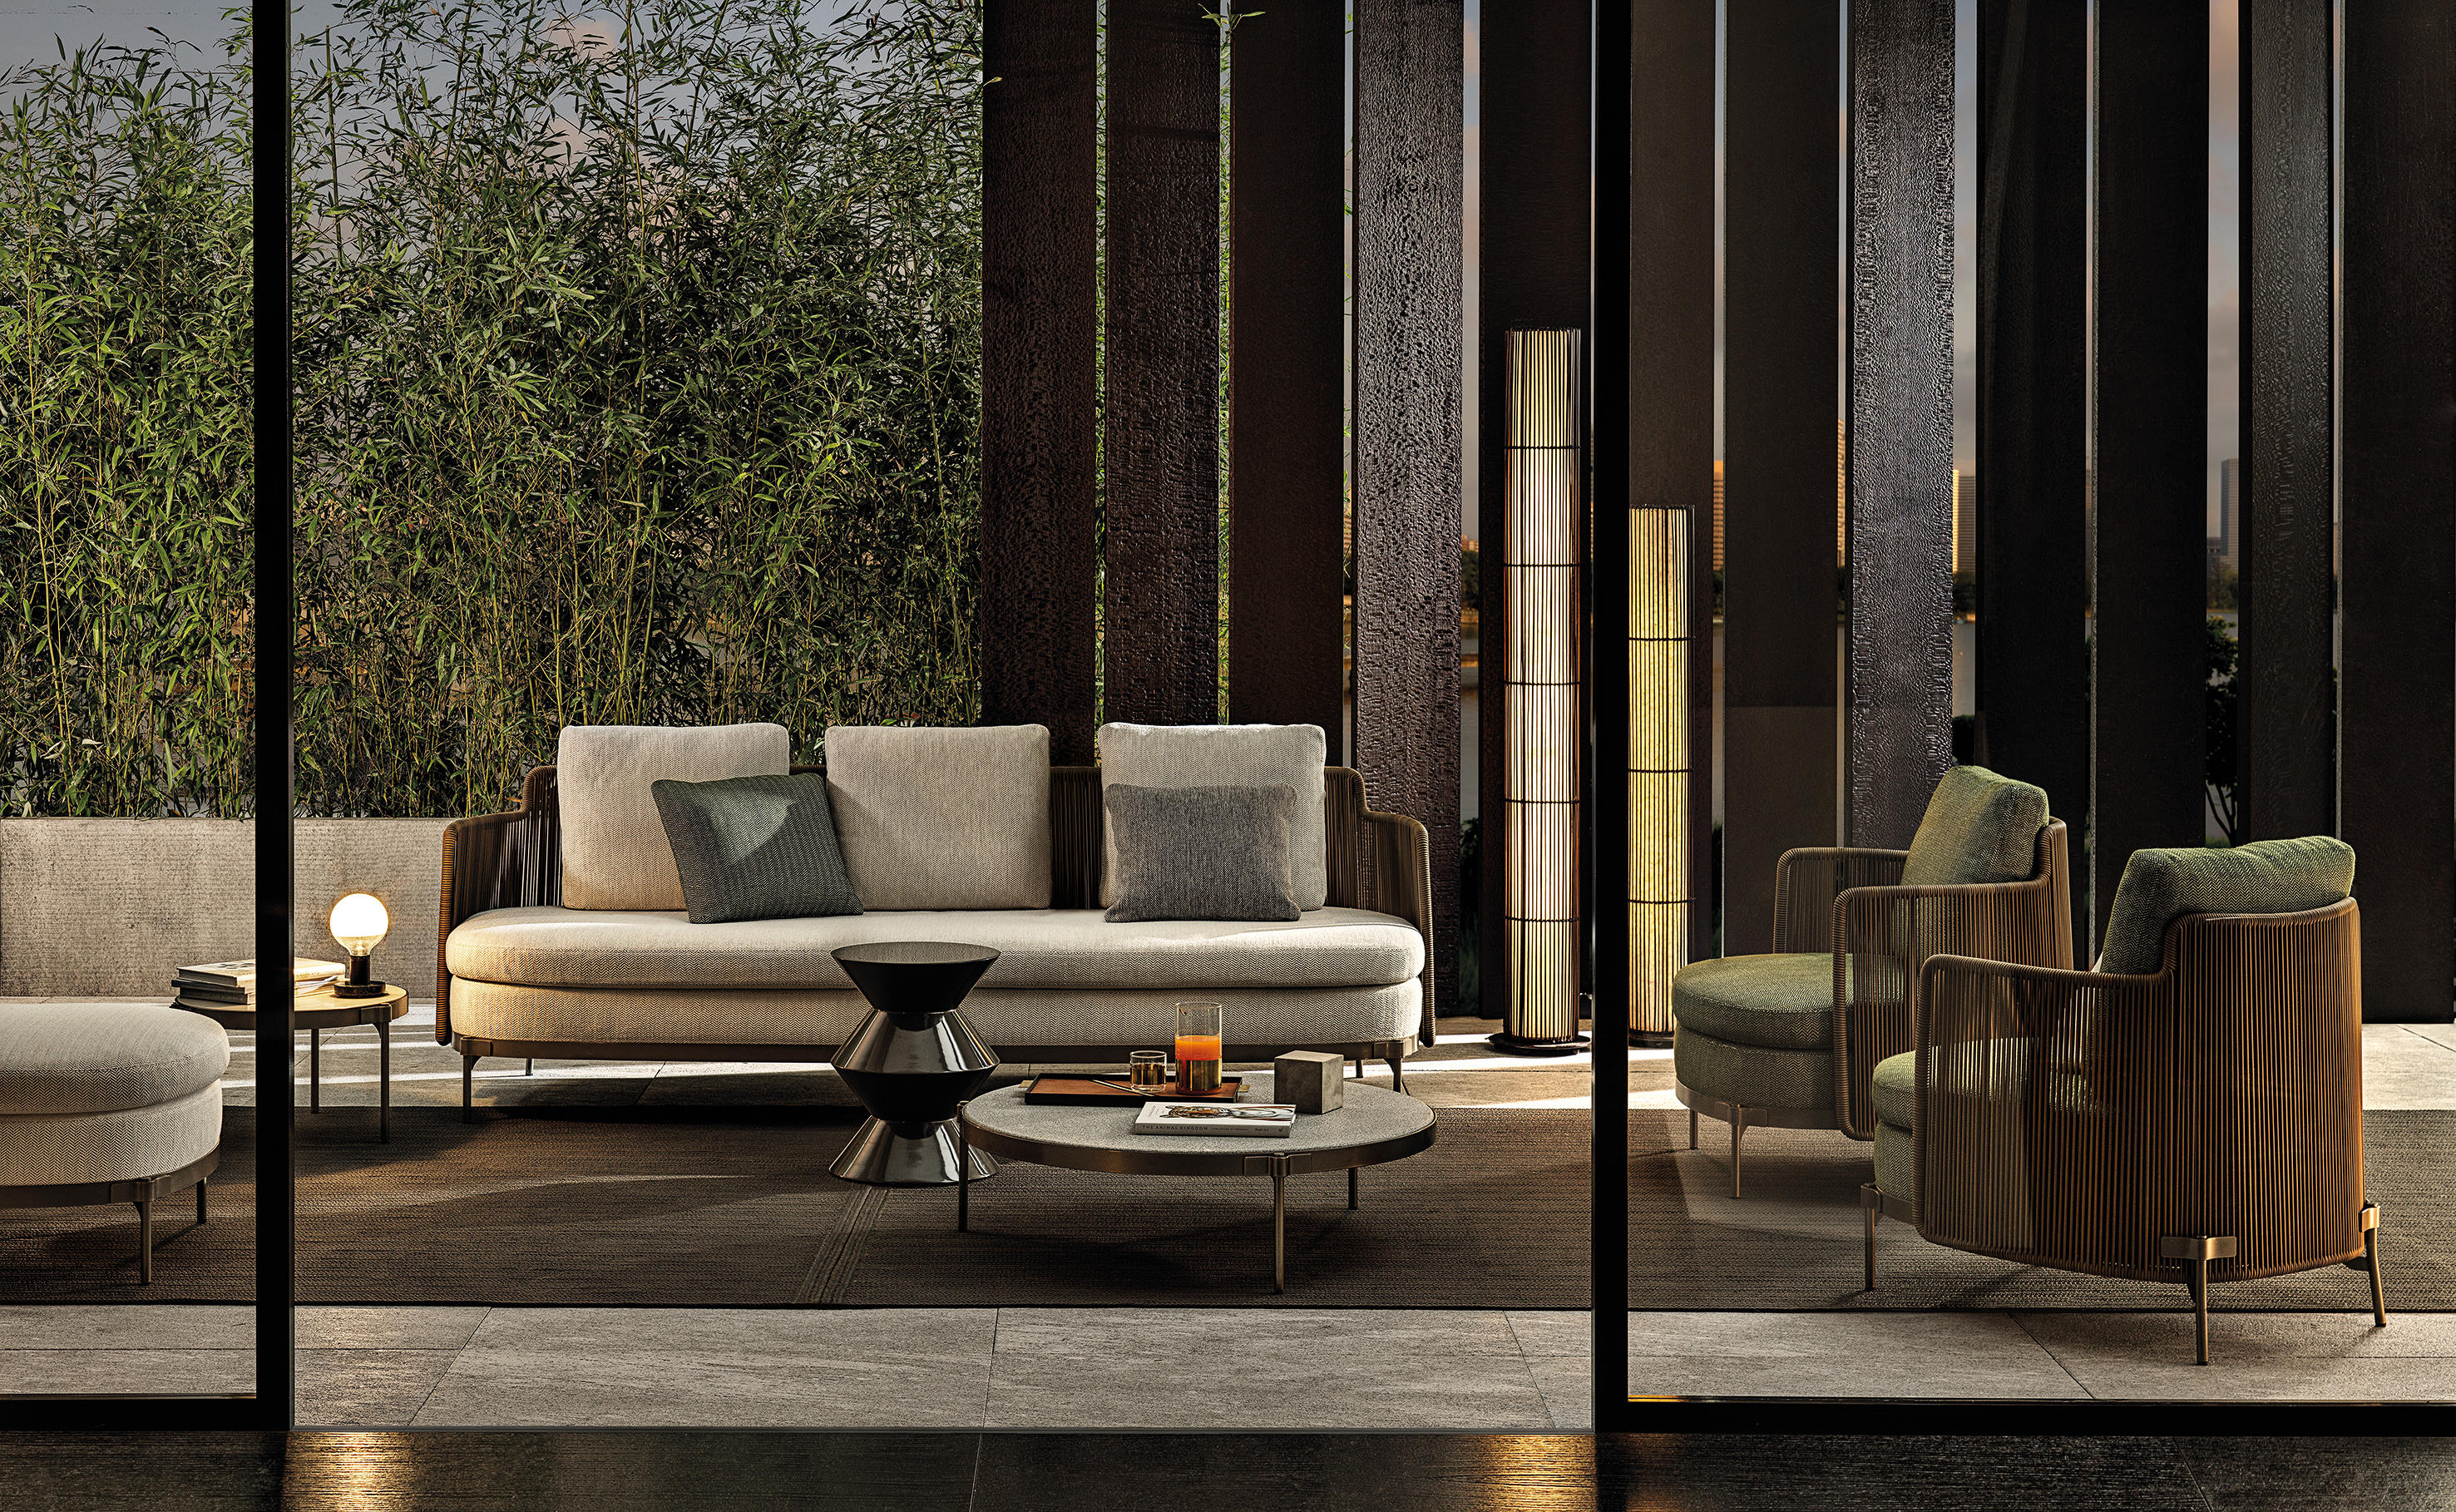 Tape Cord Outdoor Seating Collection by Nendo for Minotti